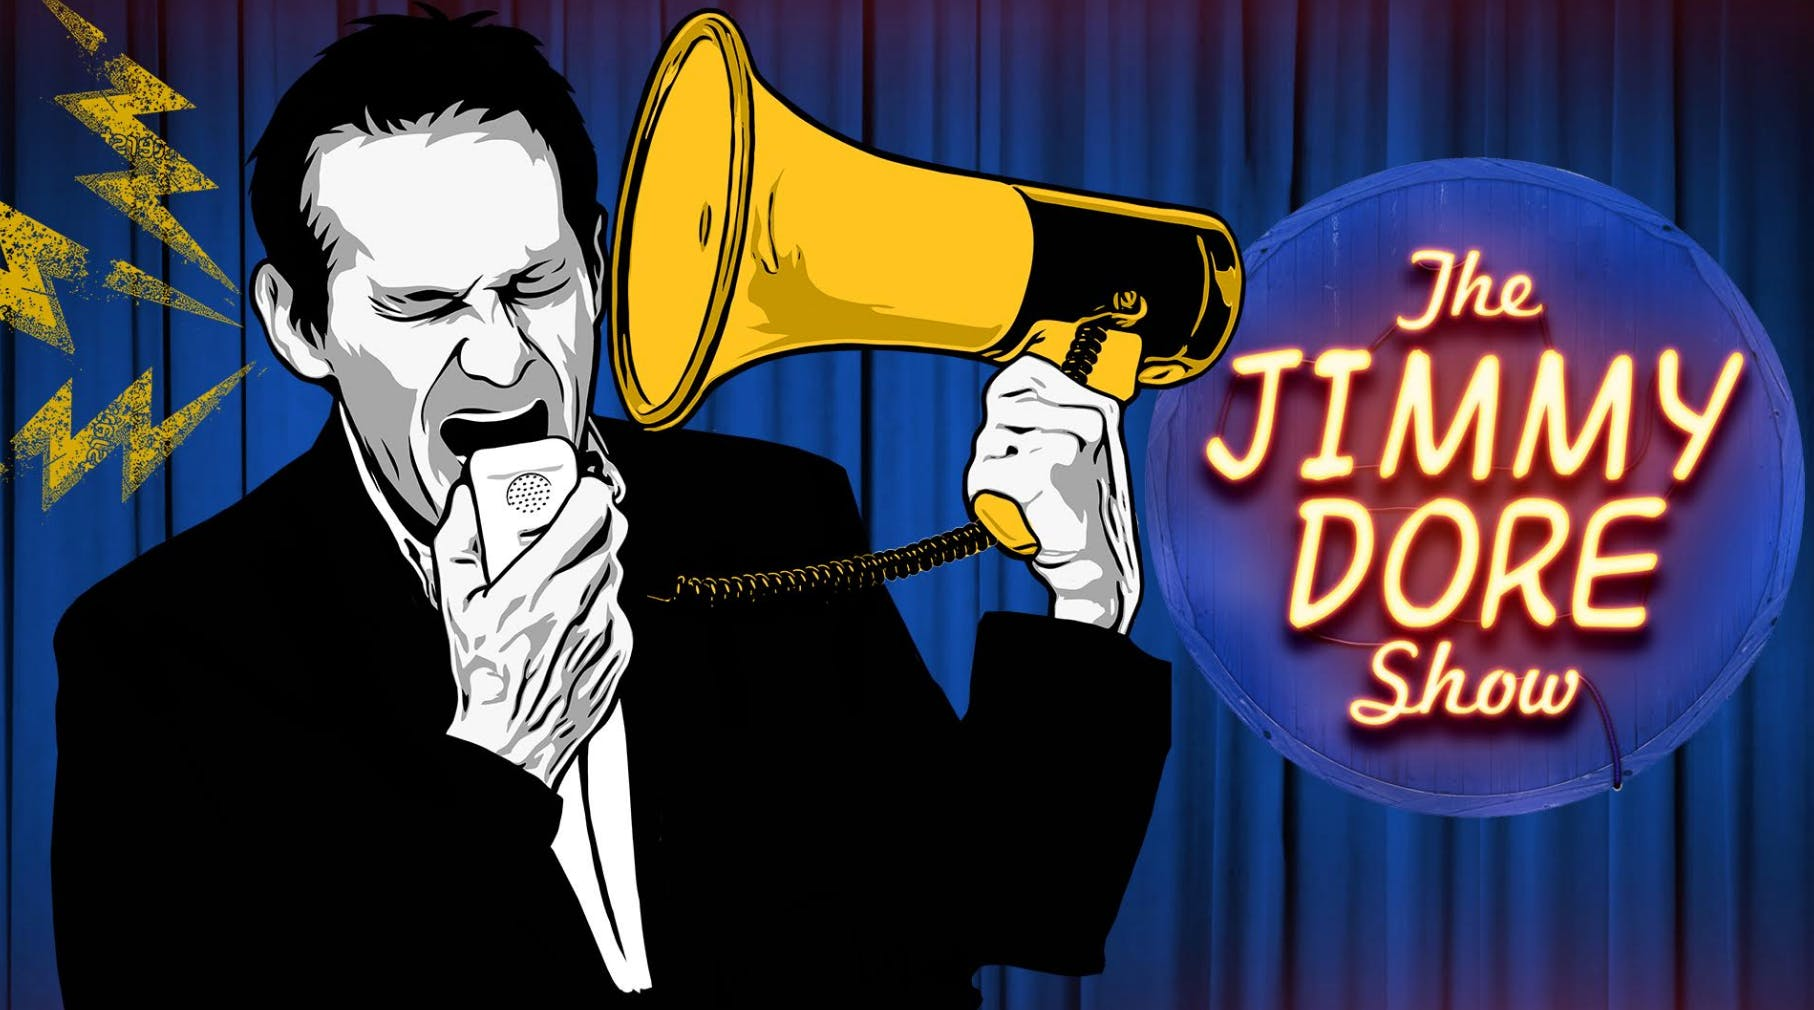 The Jimmy Dore Show @ Thalia Hall